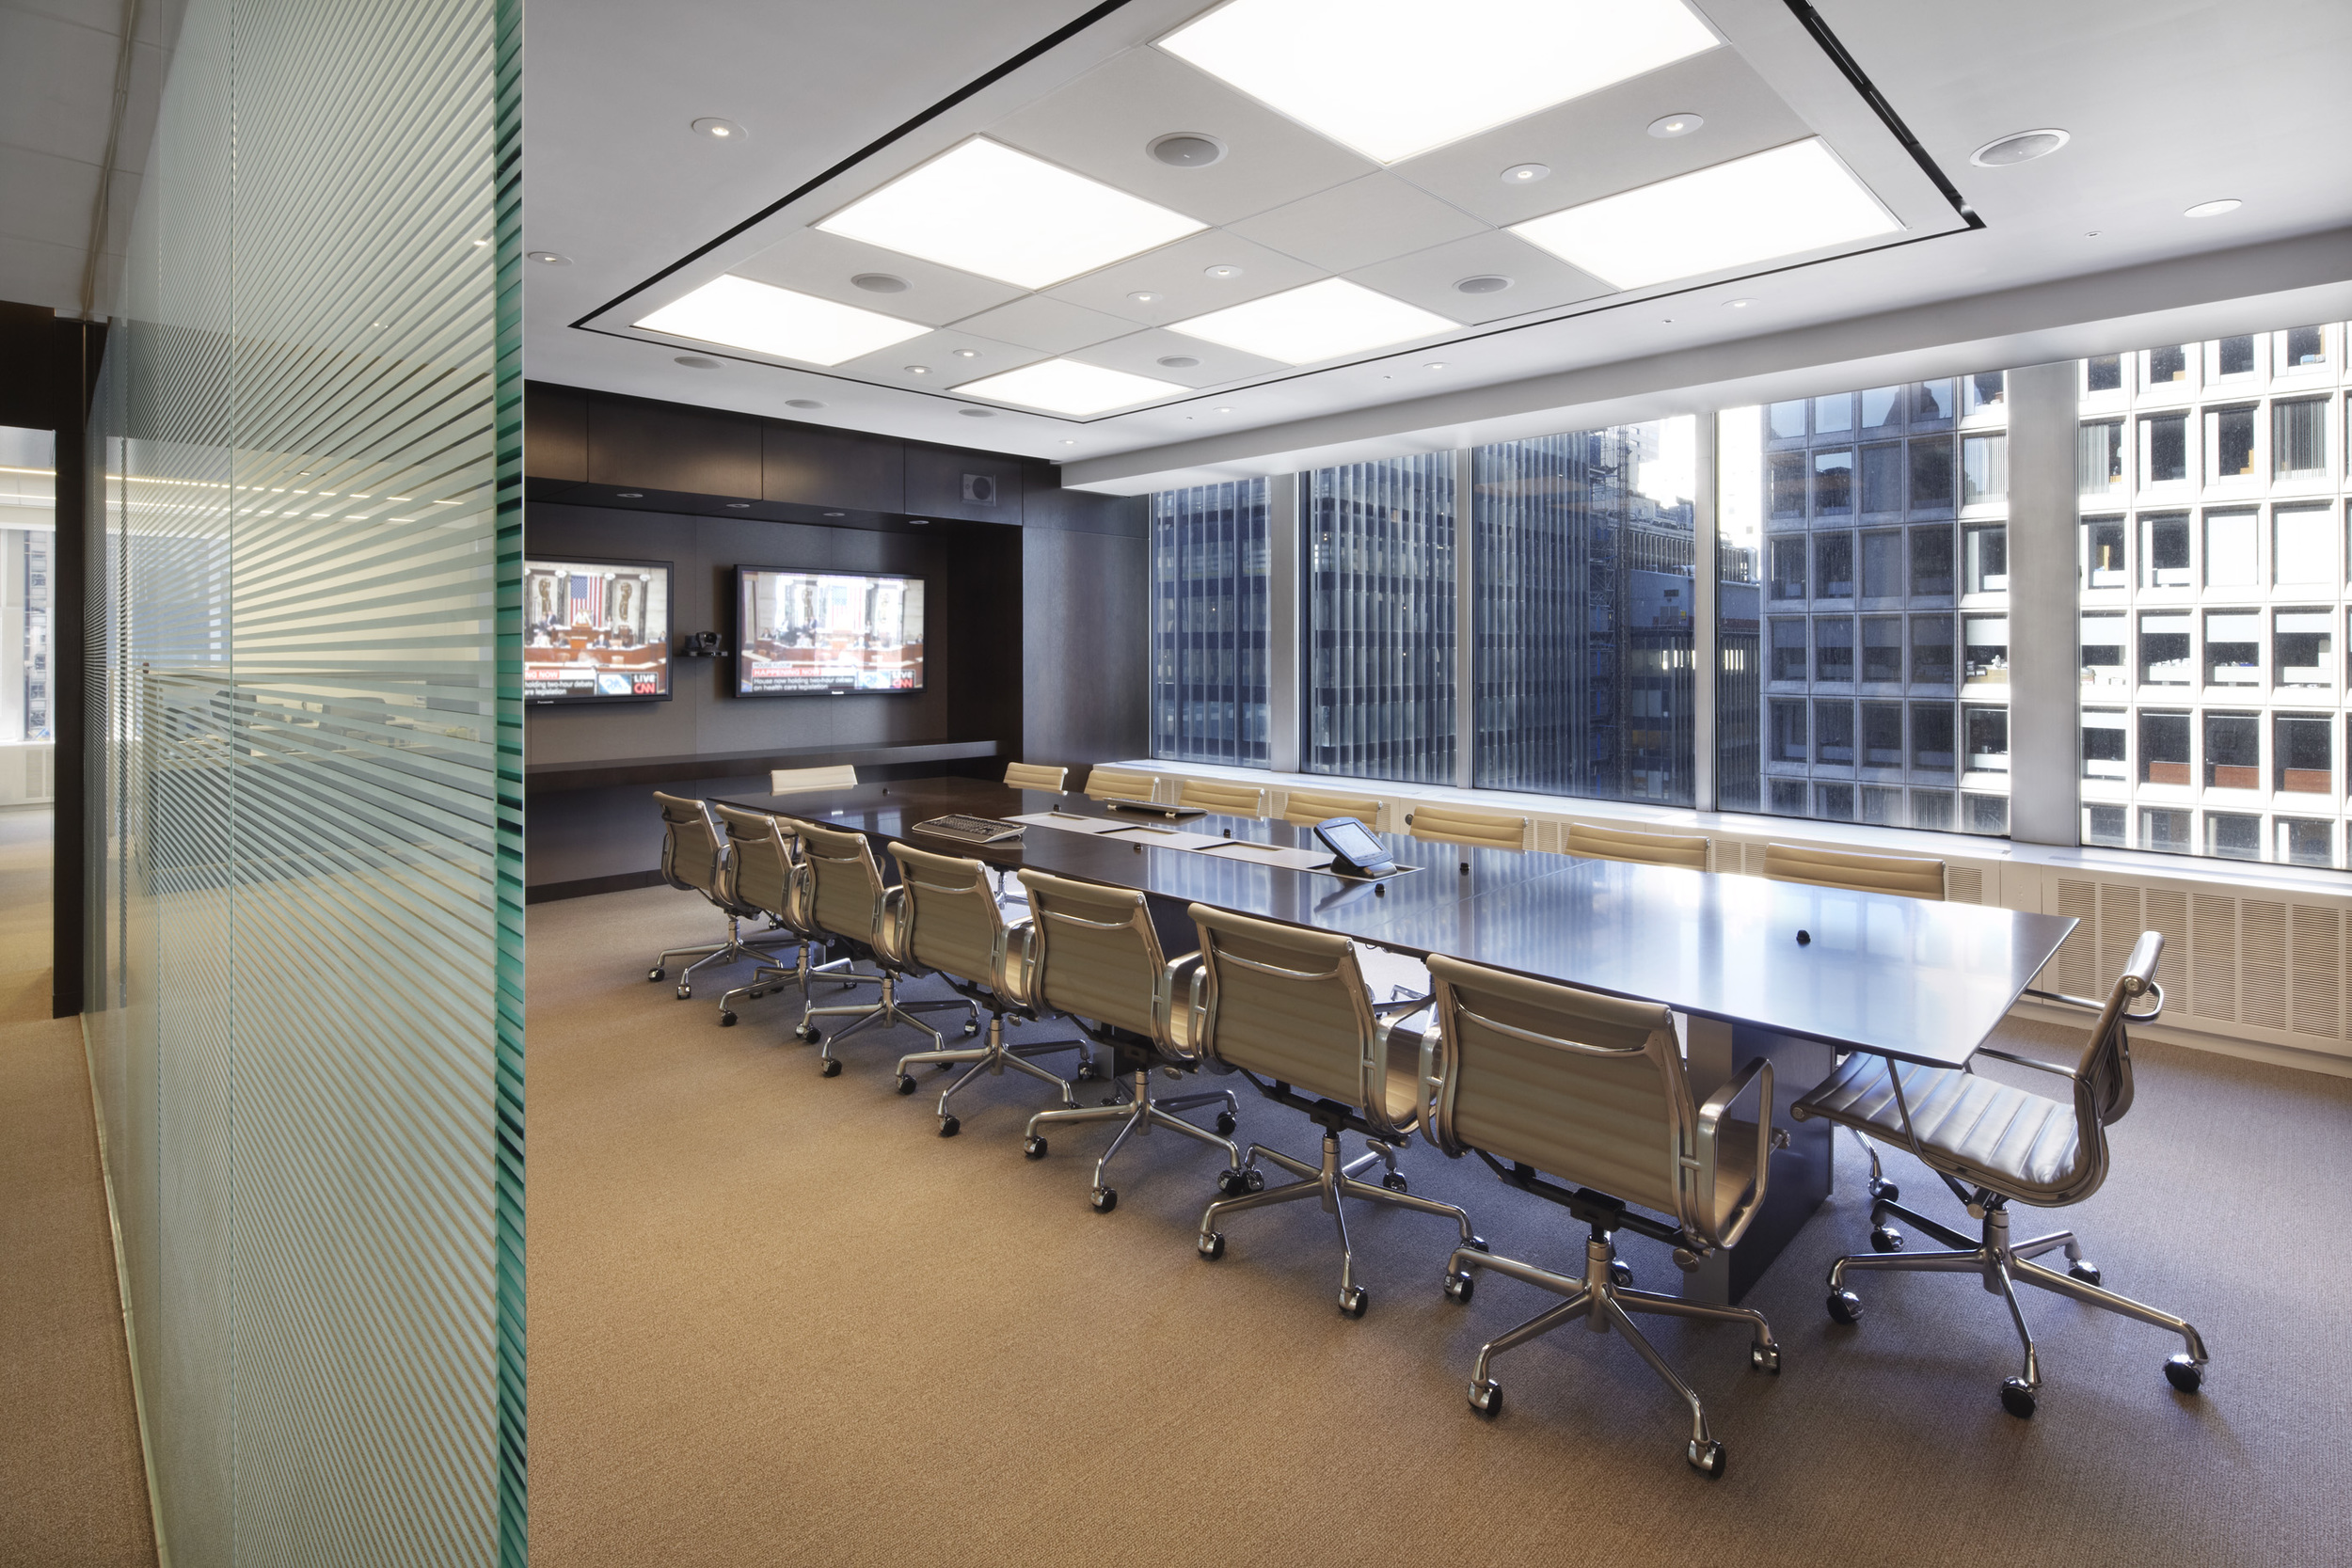 MA22_Conf Room w-images - Copy.jpg